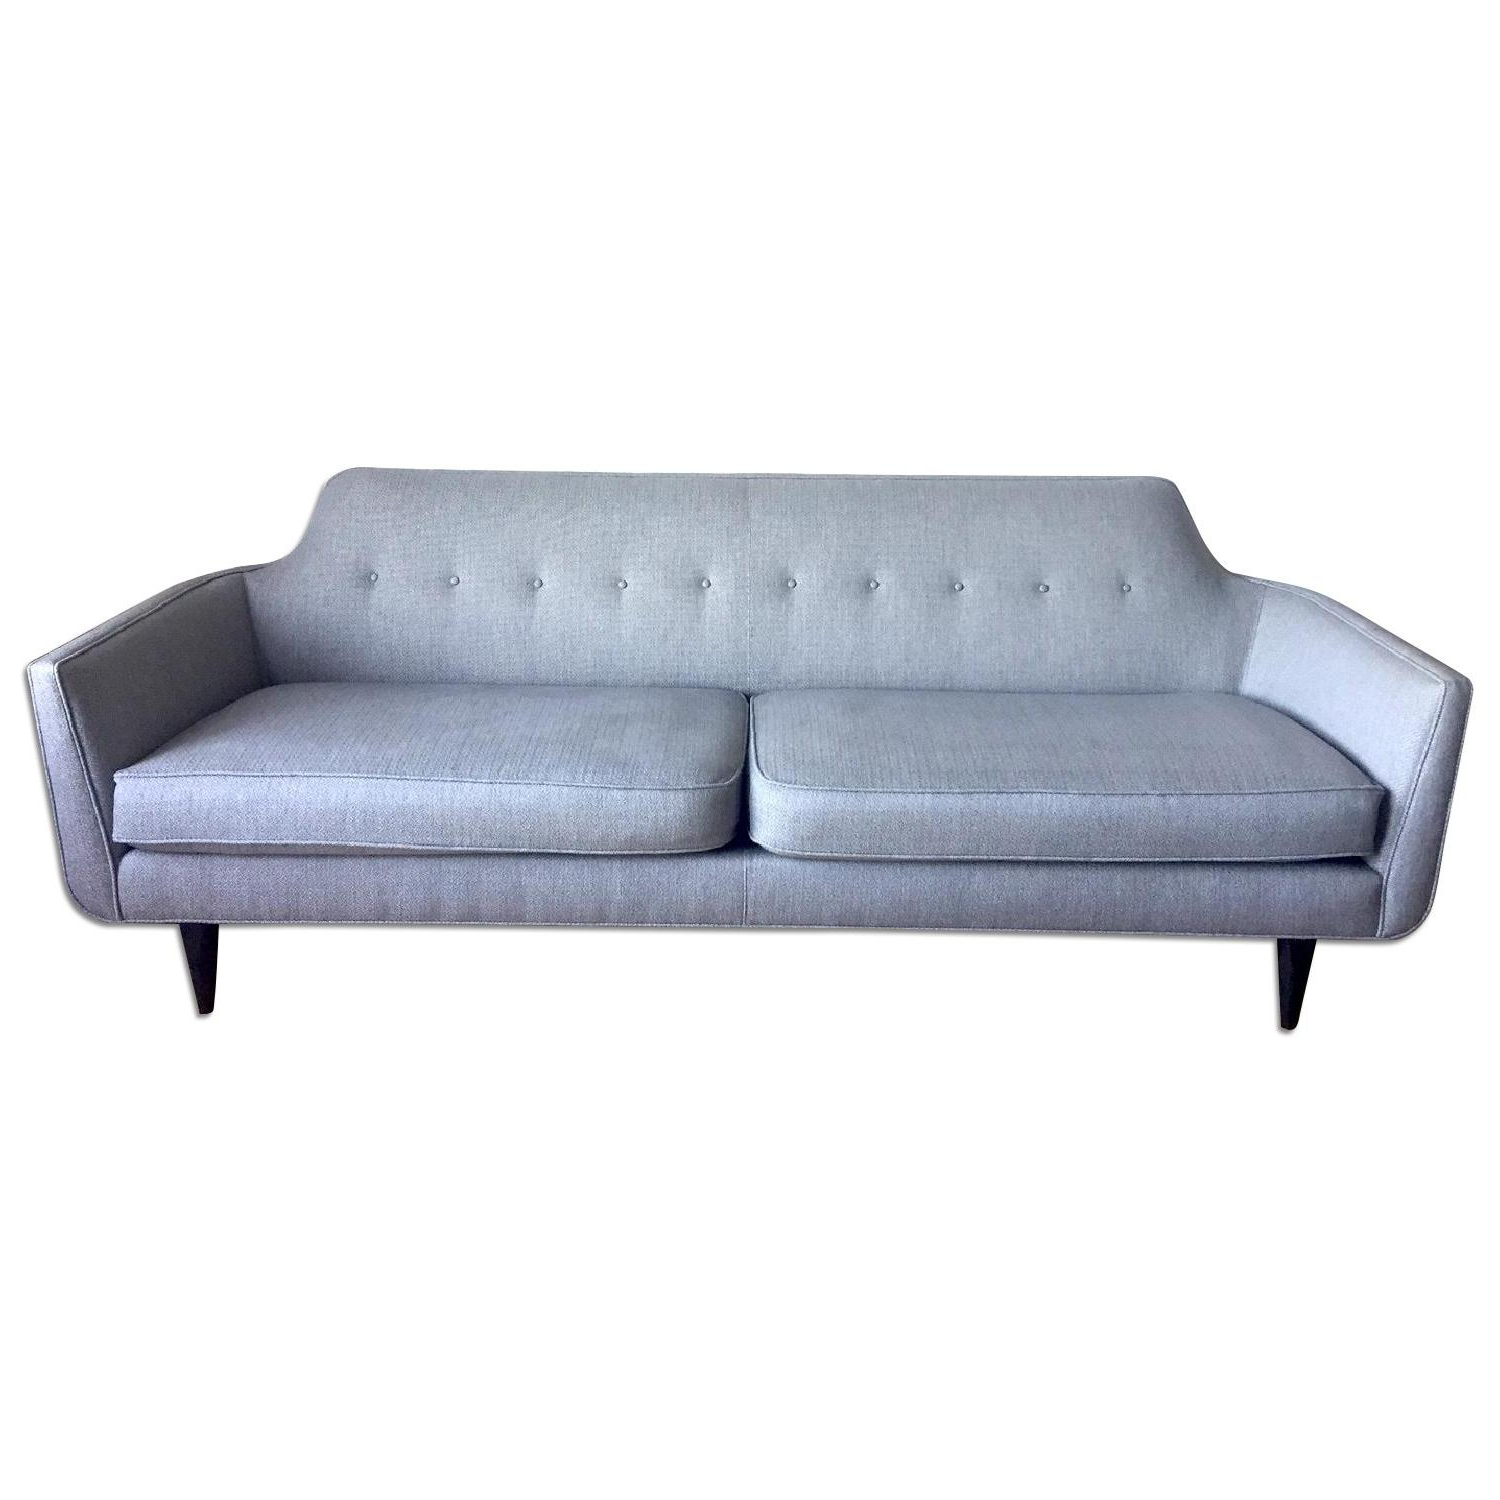 West Elm Tillary Sofa (View 16 of 20)